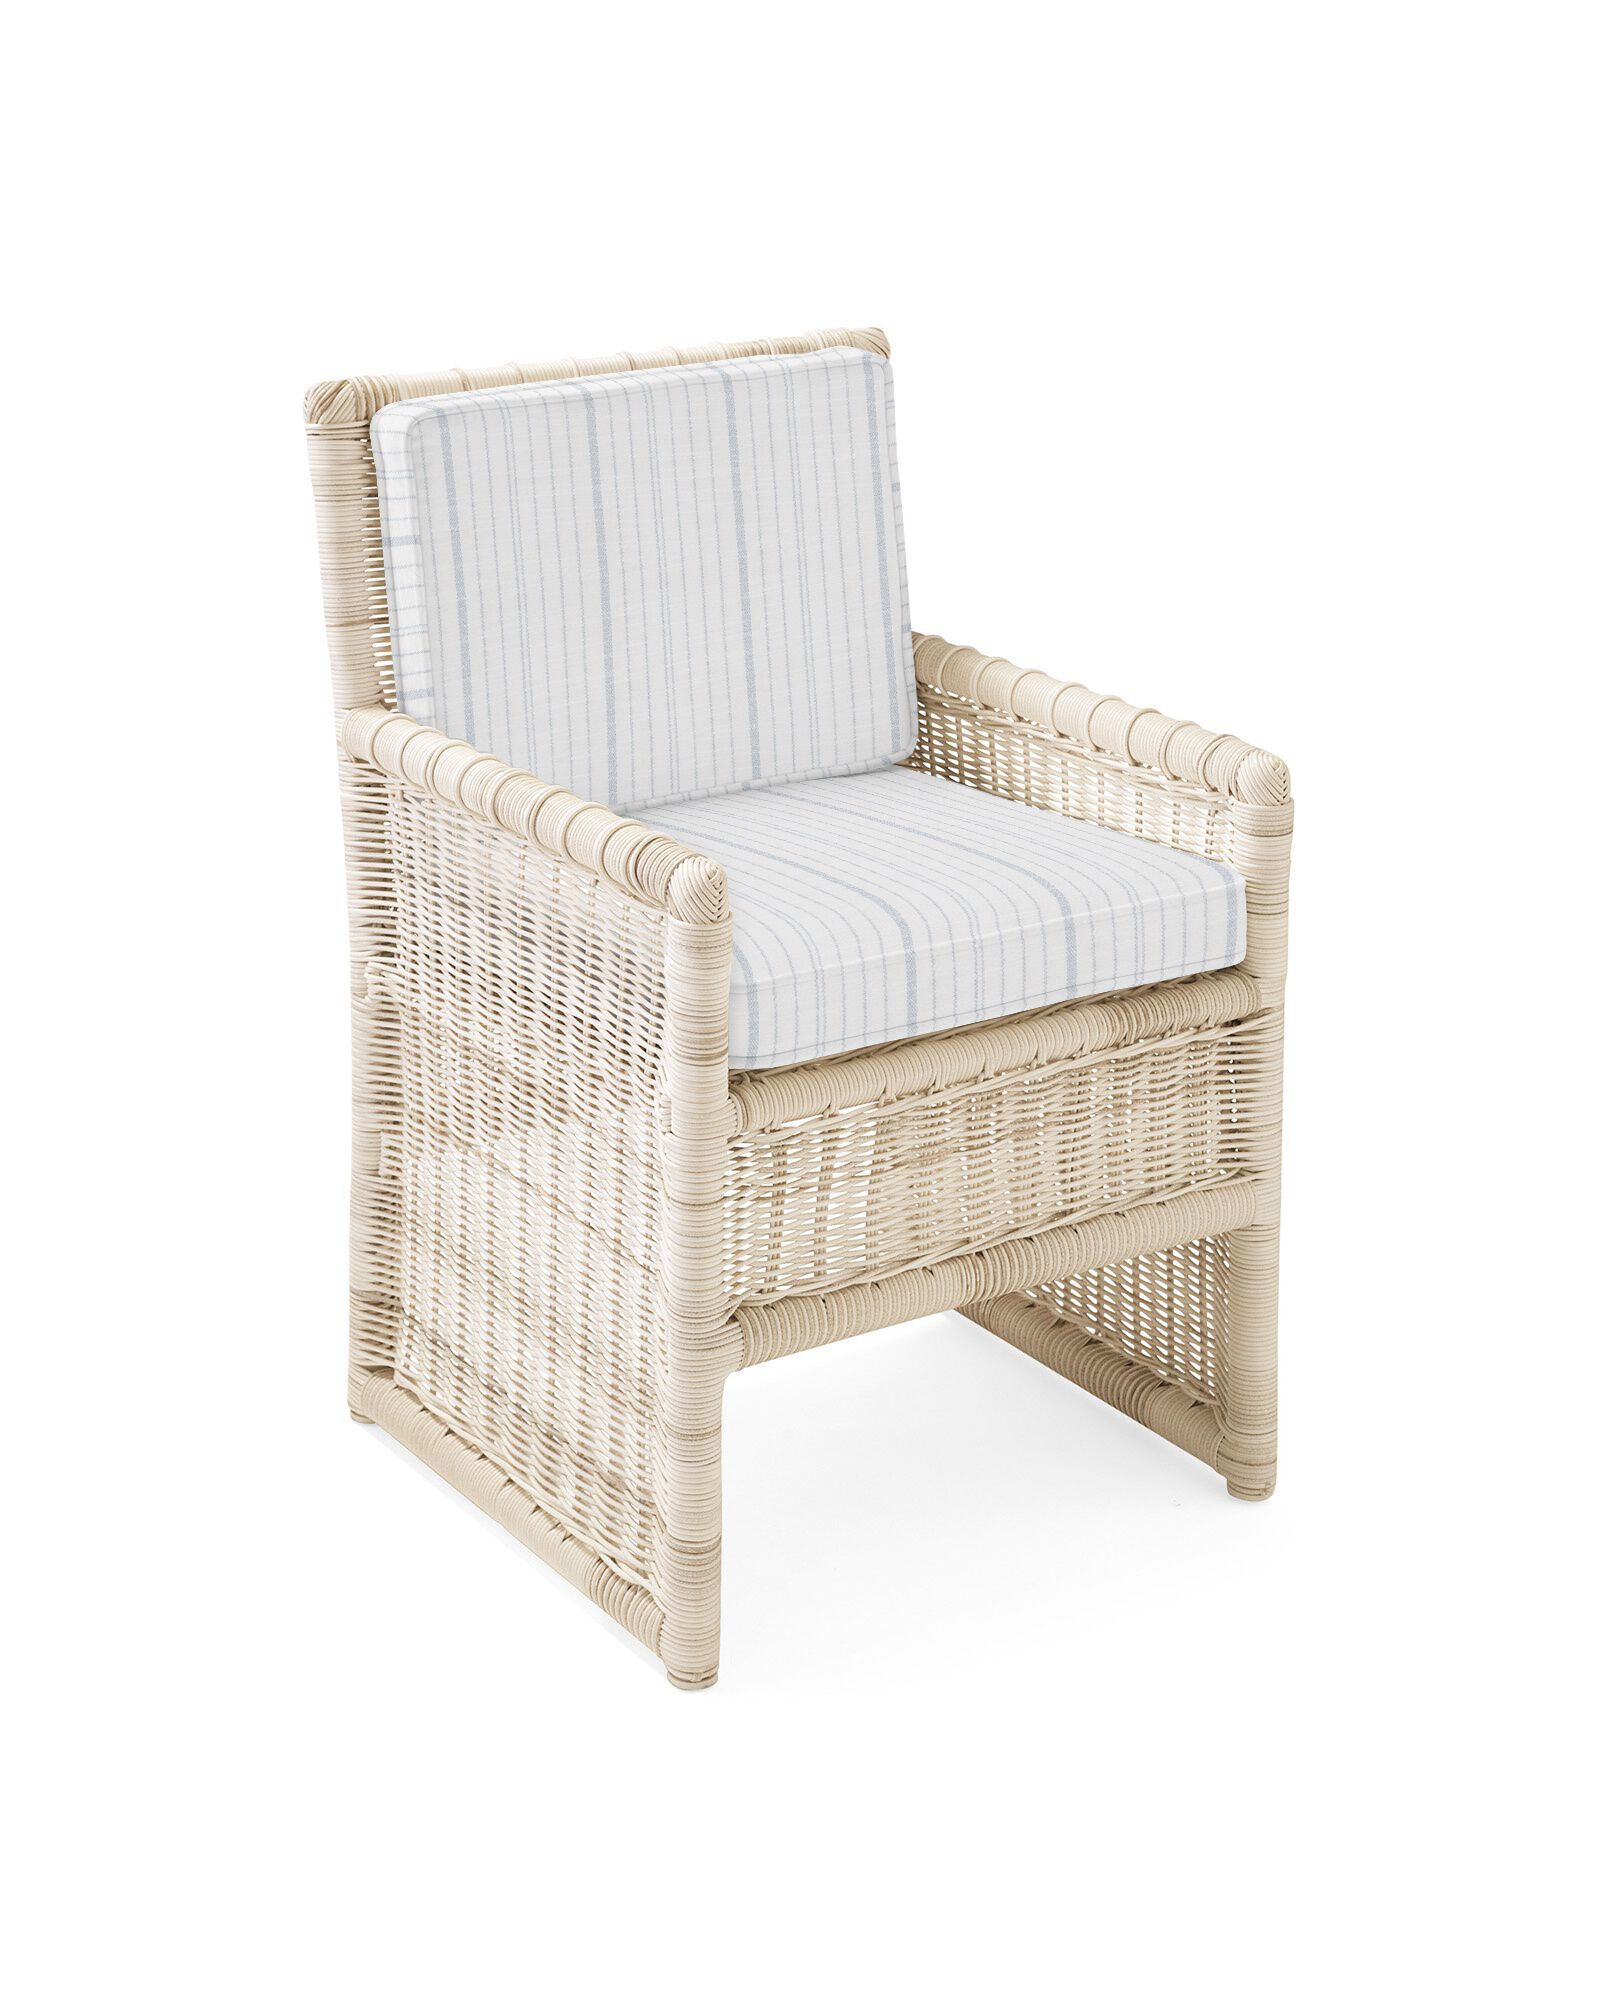 Cushion Cover for Pacifica Dining Chair, Surf Stripe Coastal Blue